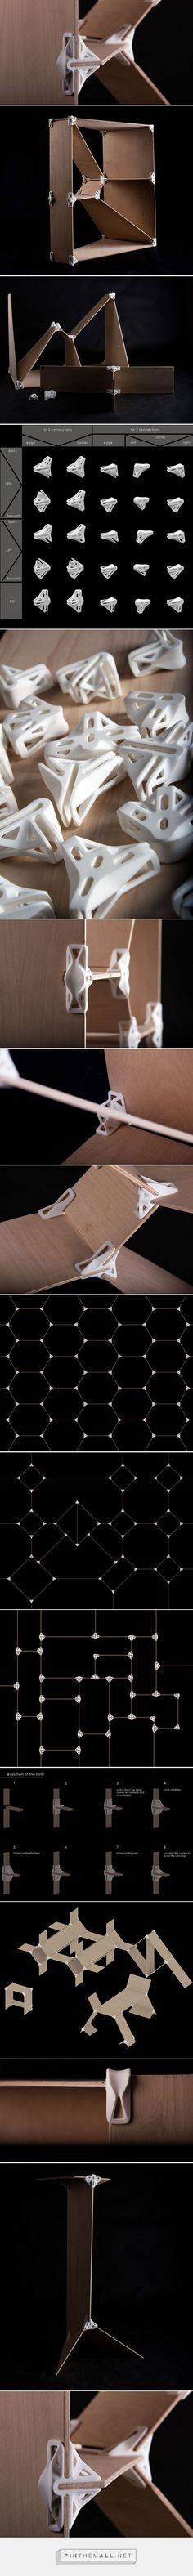 design and construct your own furniture with 3D printed joints - created via http://pinthemall.net